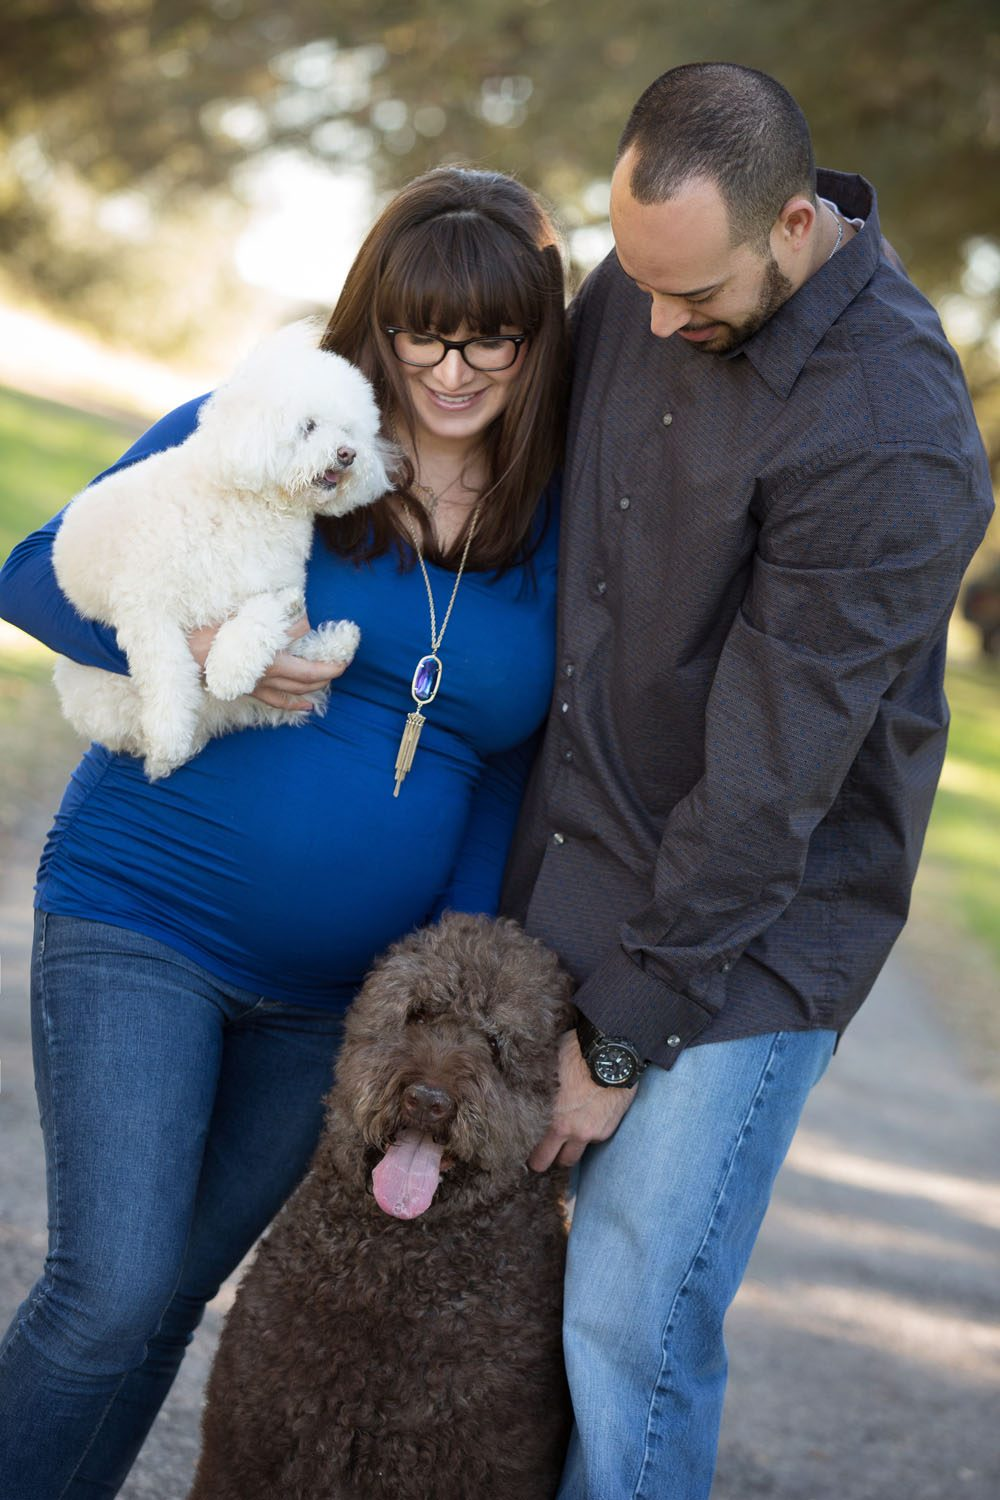 pregnant couple with dogs in royal blue laughing